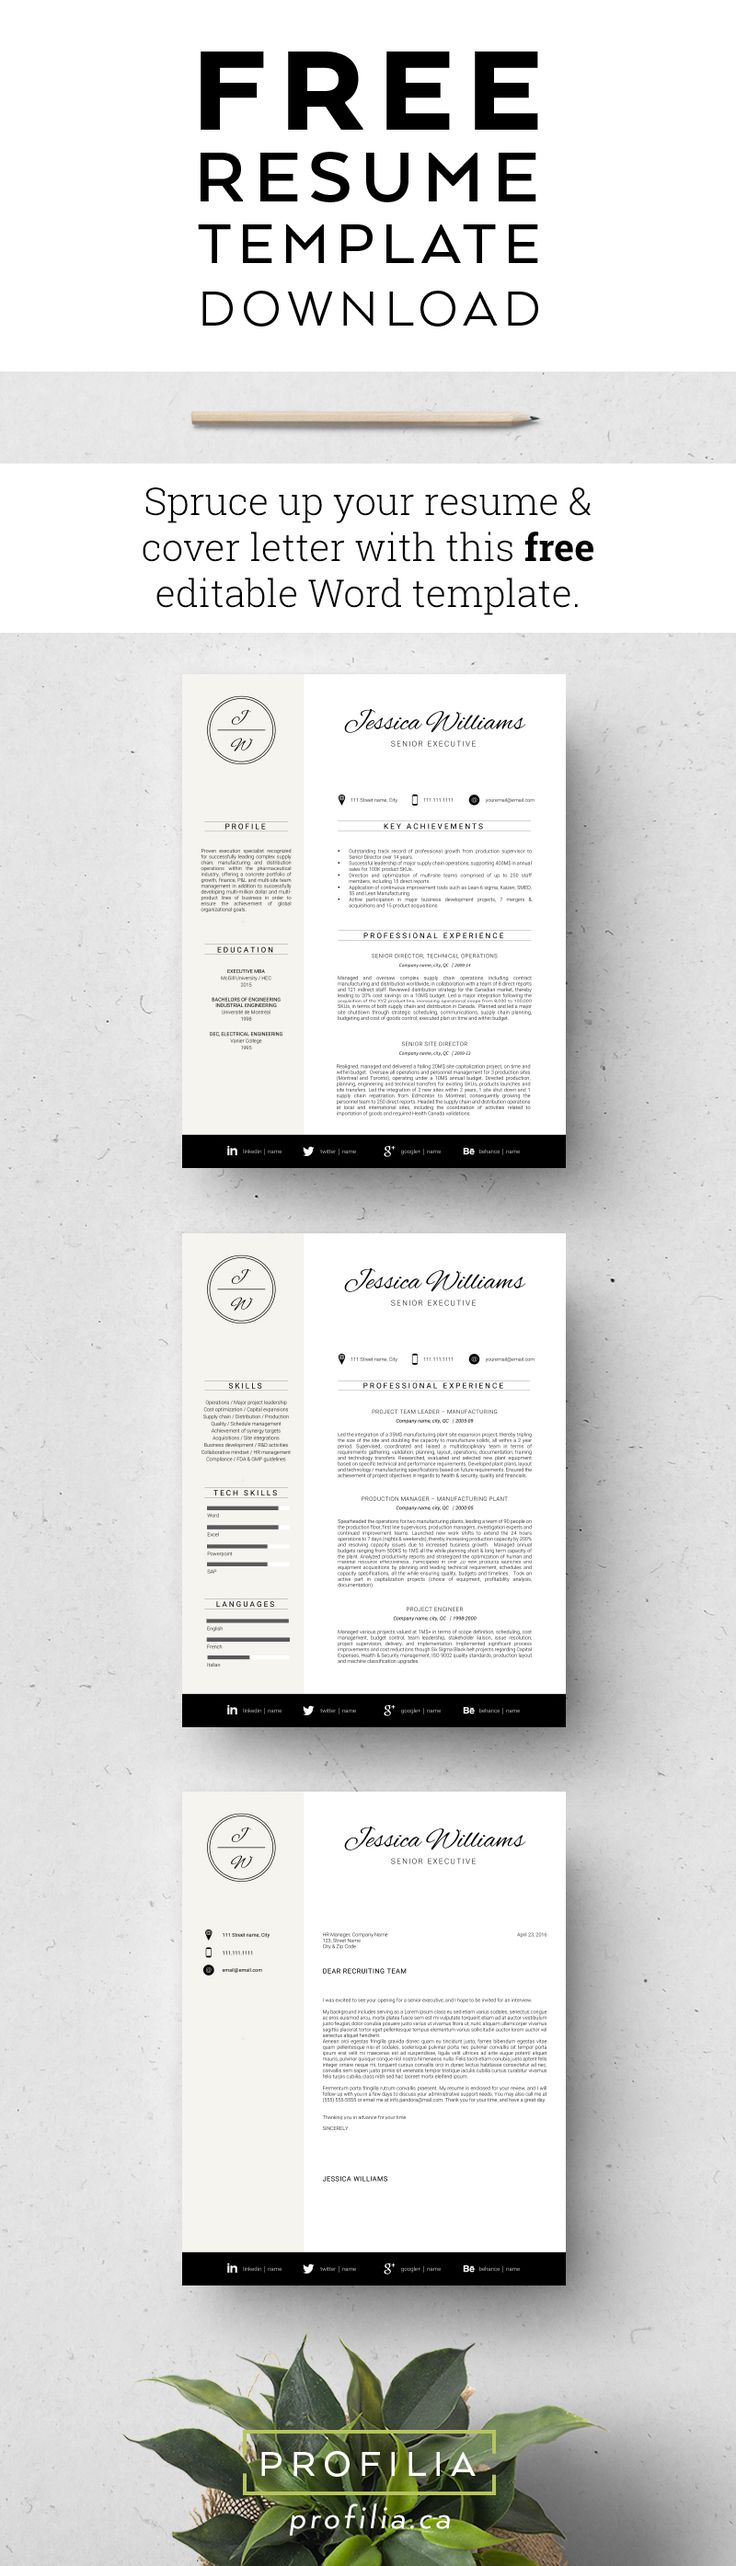 free resume template refresh your job search with this free resume cover - Free Cover Letter For Resume Template